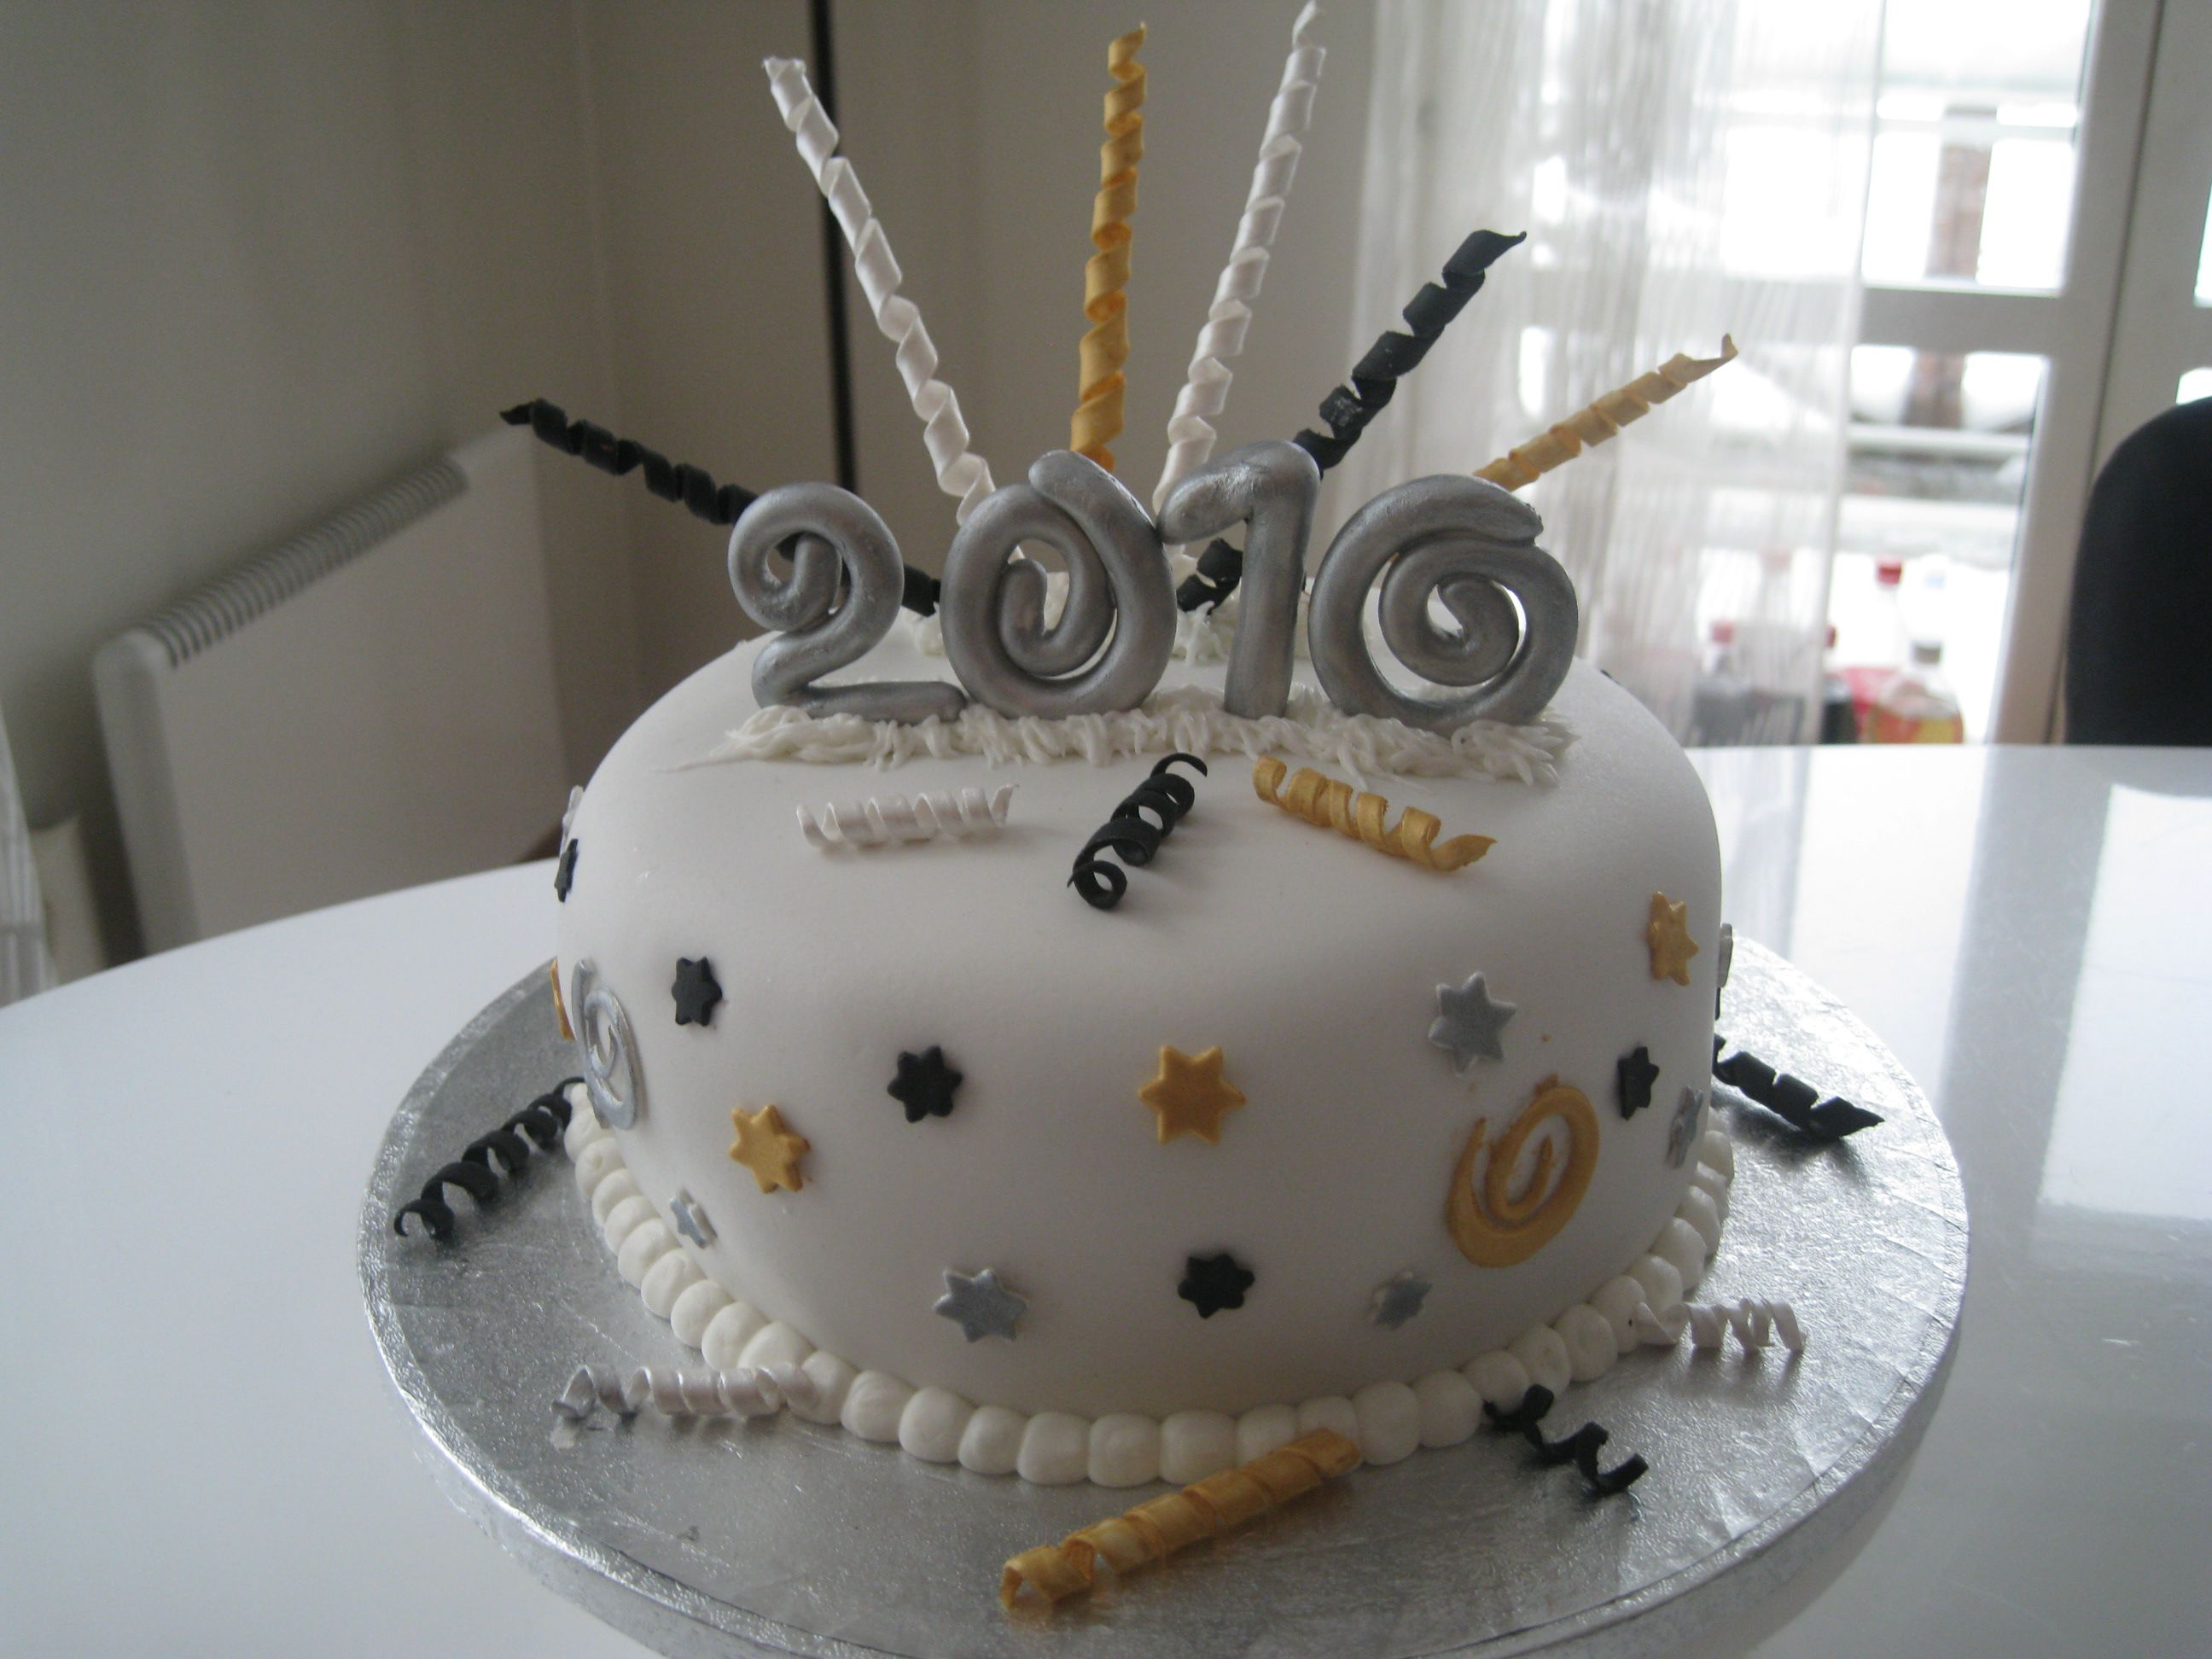 New Year S Cake New Year S Cake New Year Cake Designs New Year